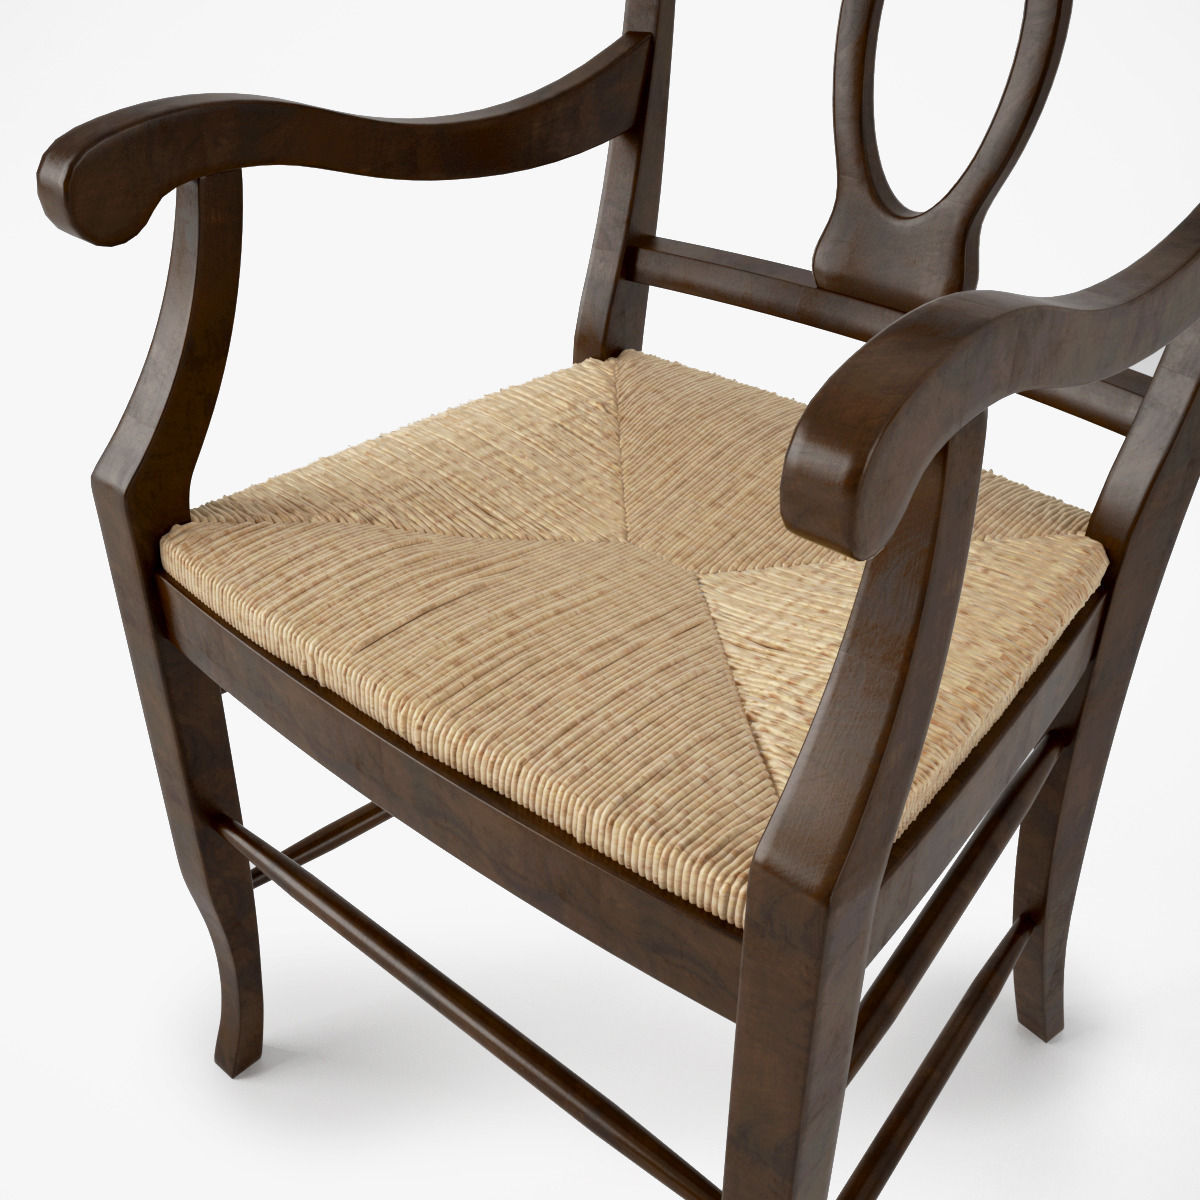 ... pottery barn napoleon rush seat chair 3d model max obj 7 ... & 3D model Pottery Barn Napoleon Rush Seat Chair | CGTrader